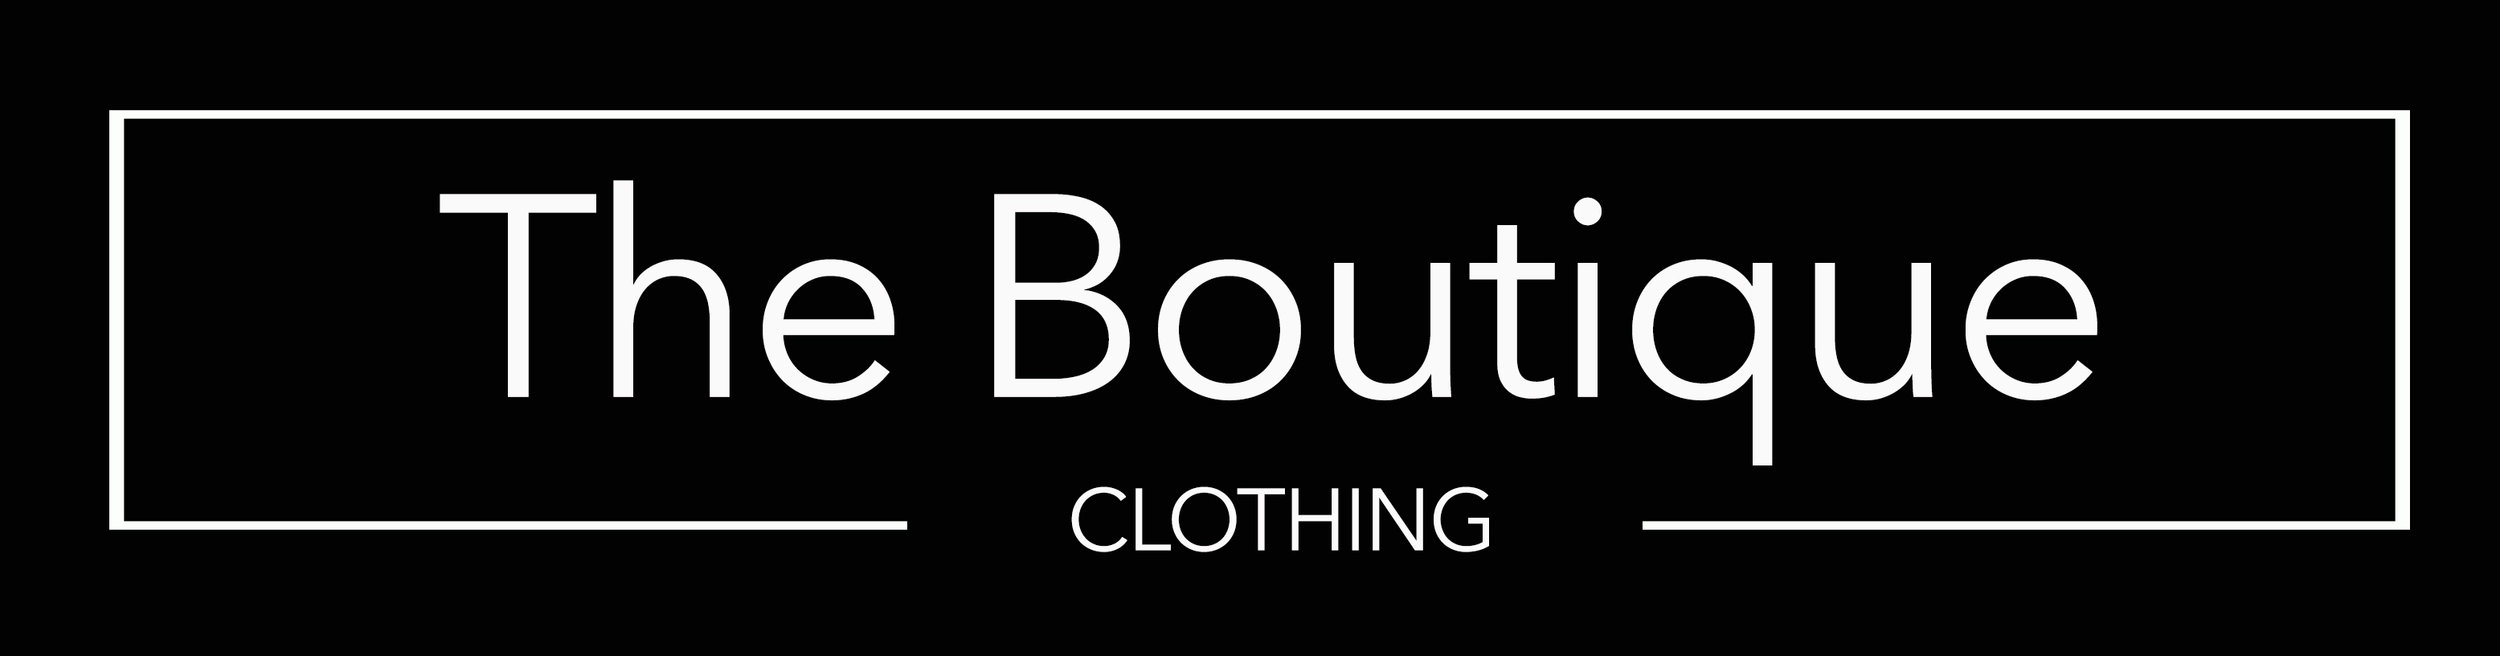 The Boutique Clothing - 1540 US Highway 395 North, Ste B775-392-0122